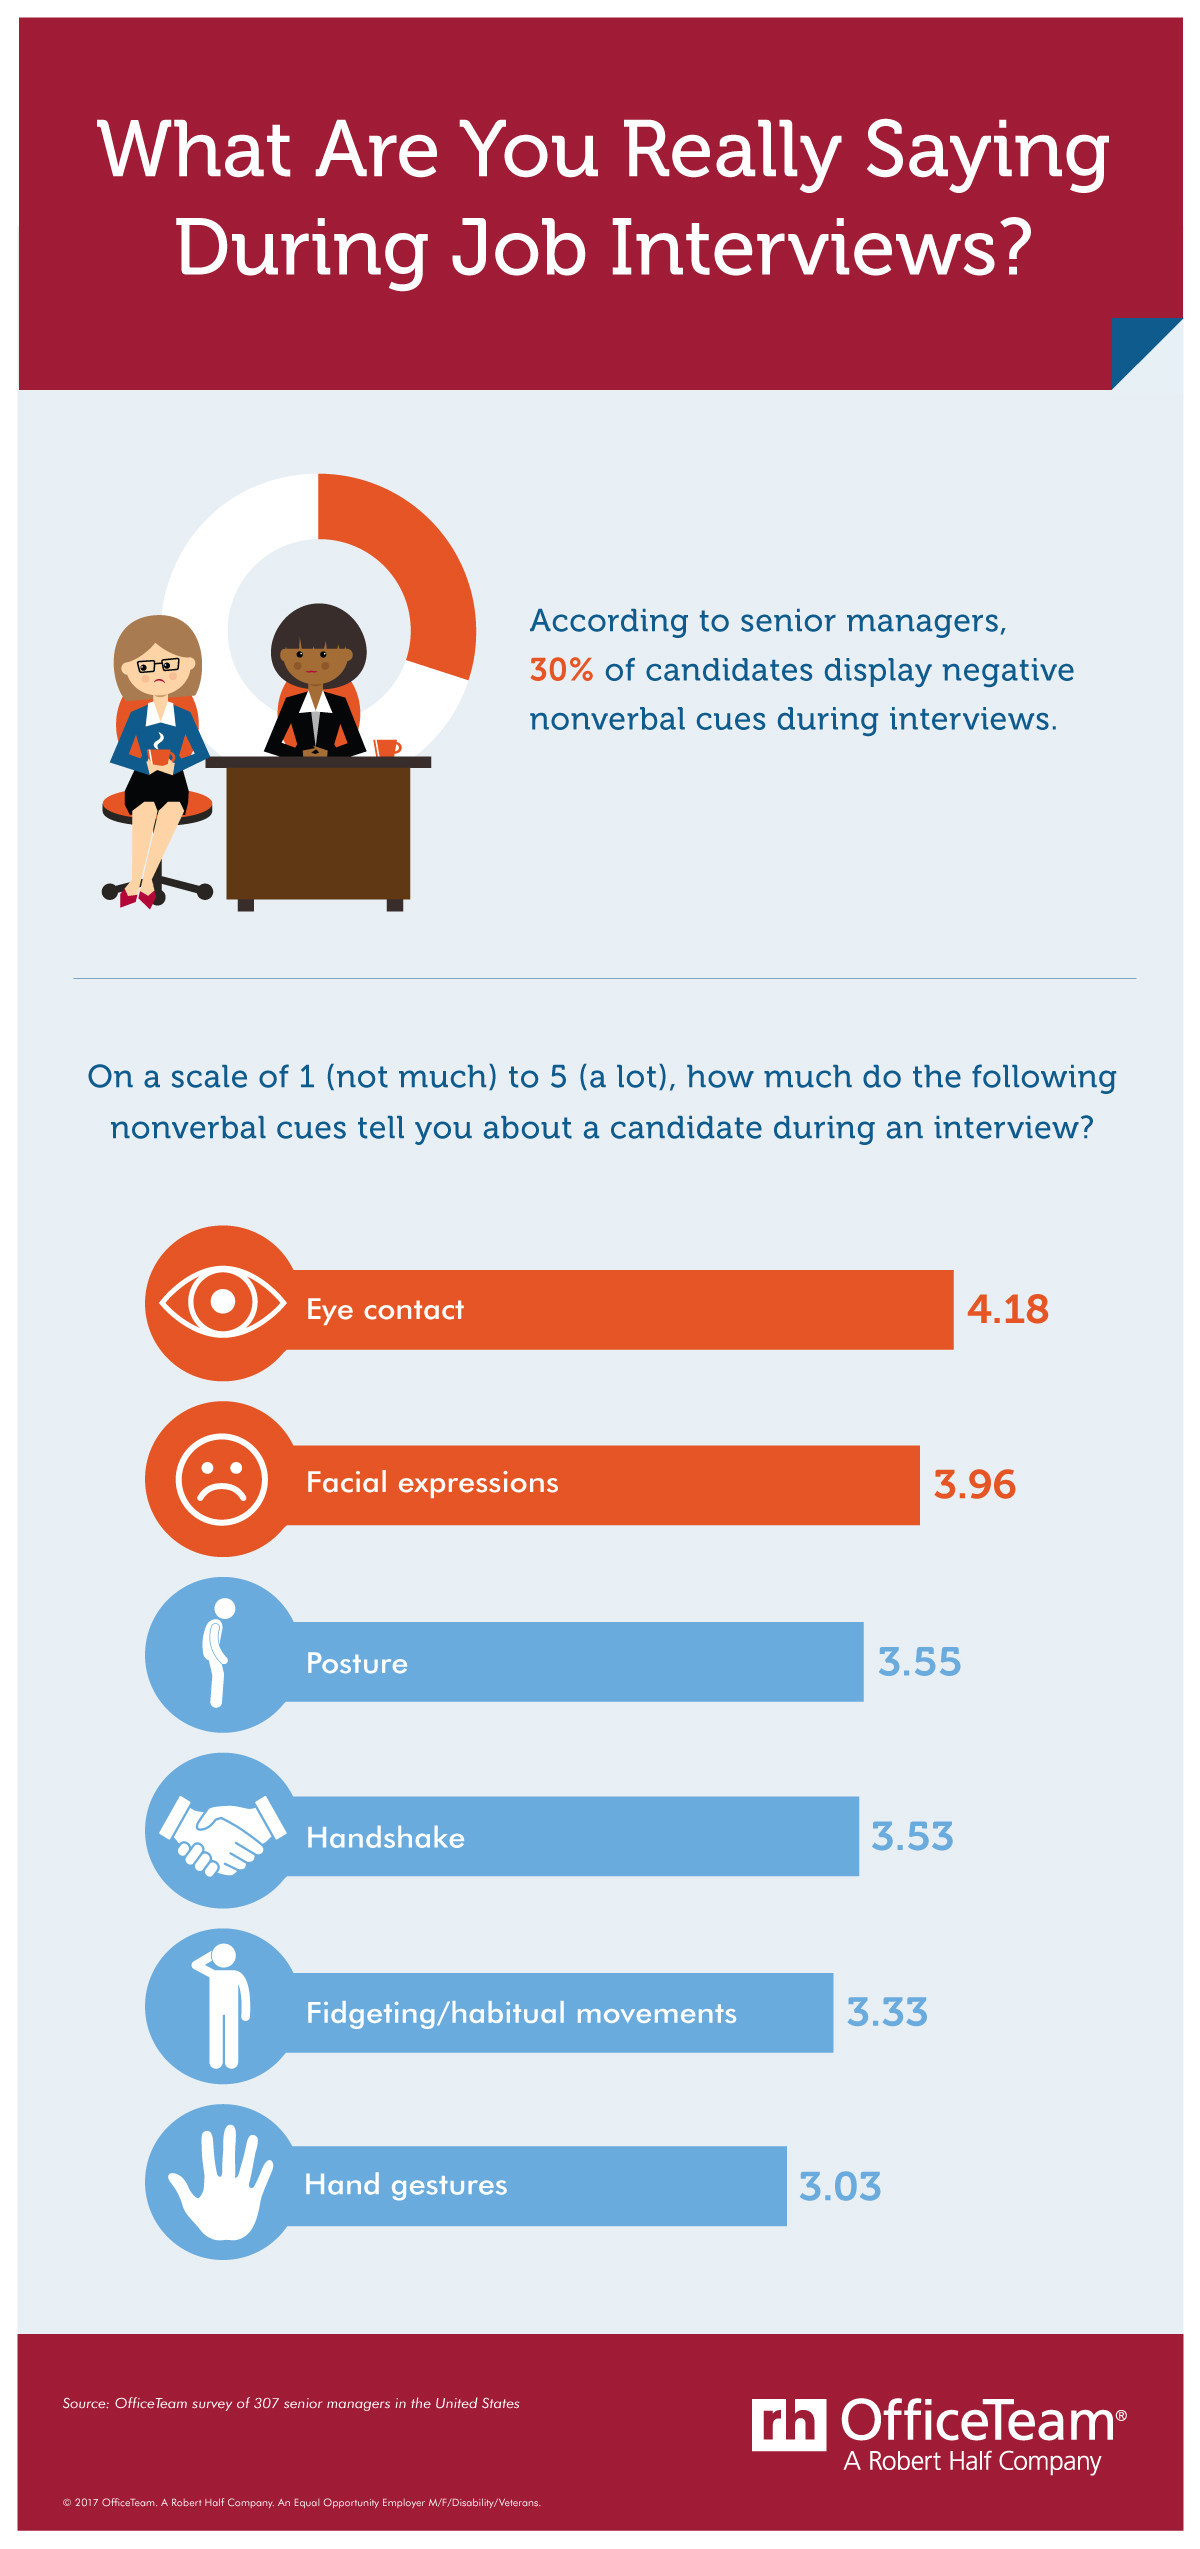 According to an OfficeTeam survey, senior managers said 30% of job candidates display negative body language during interviews. Eye contact and facial expressions were identified as the most telling nonverbal cues when meeting with applicants.